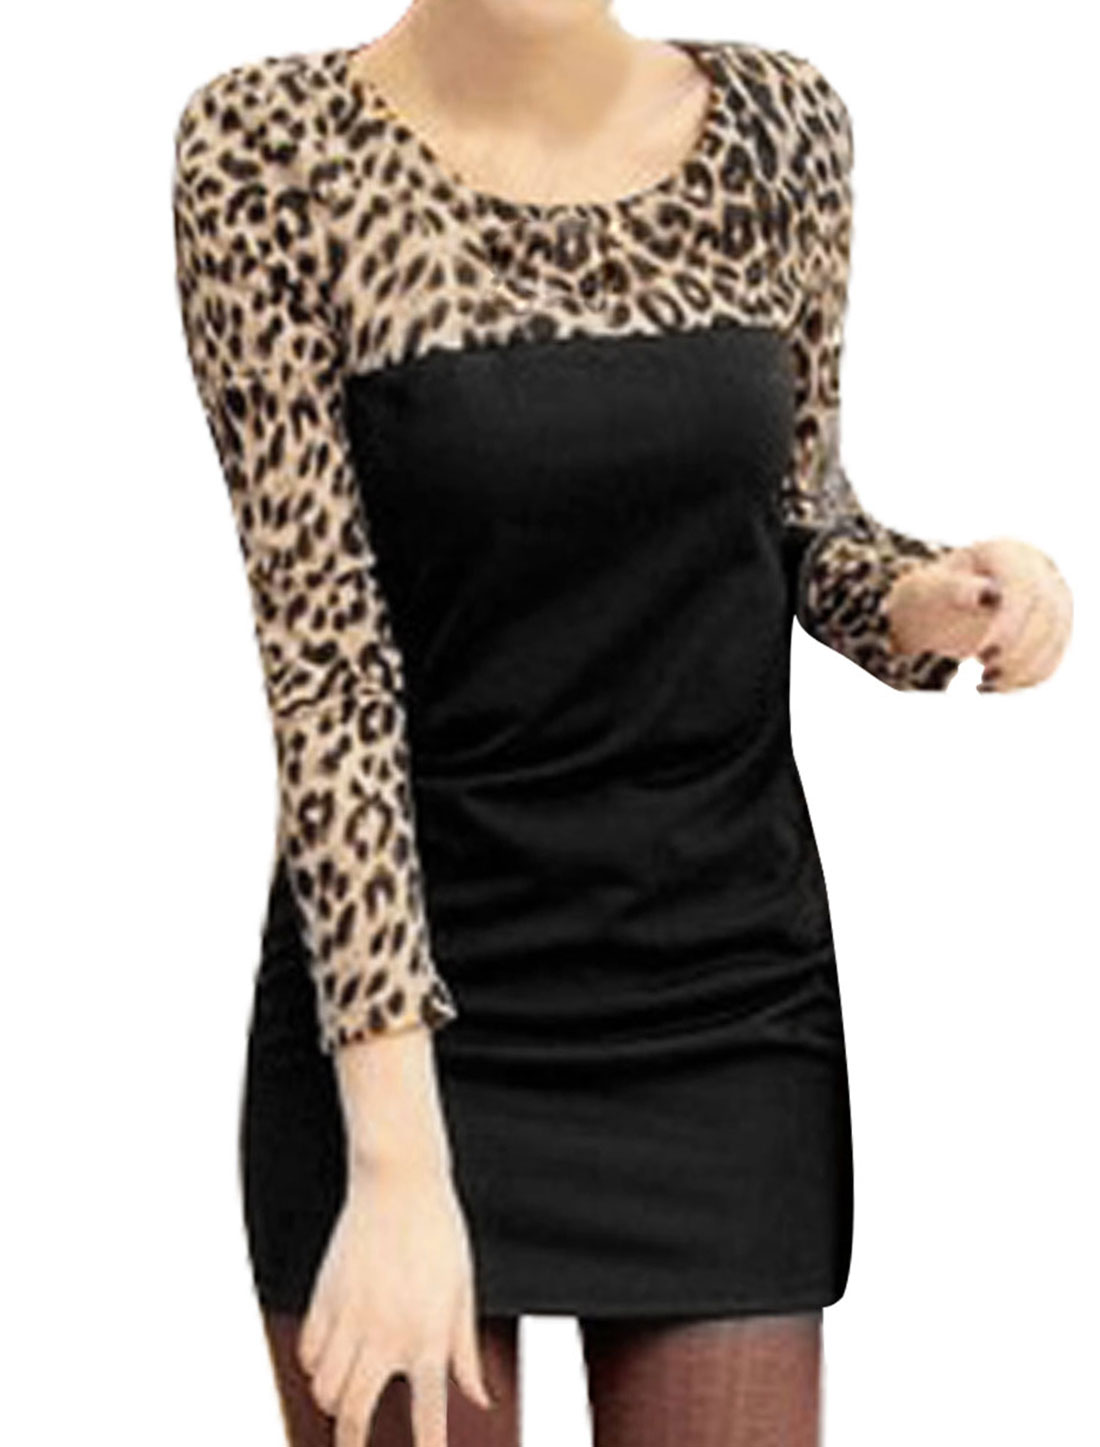 Ladies Coffee Color Black Long Sleeves Leopard Prints Pullover Mini Dress XS